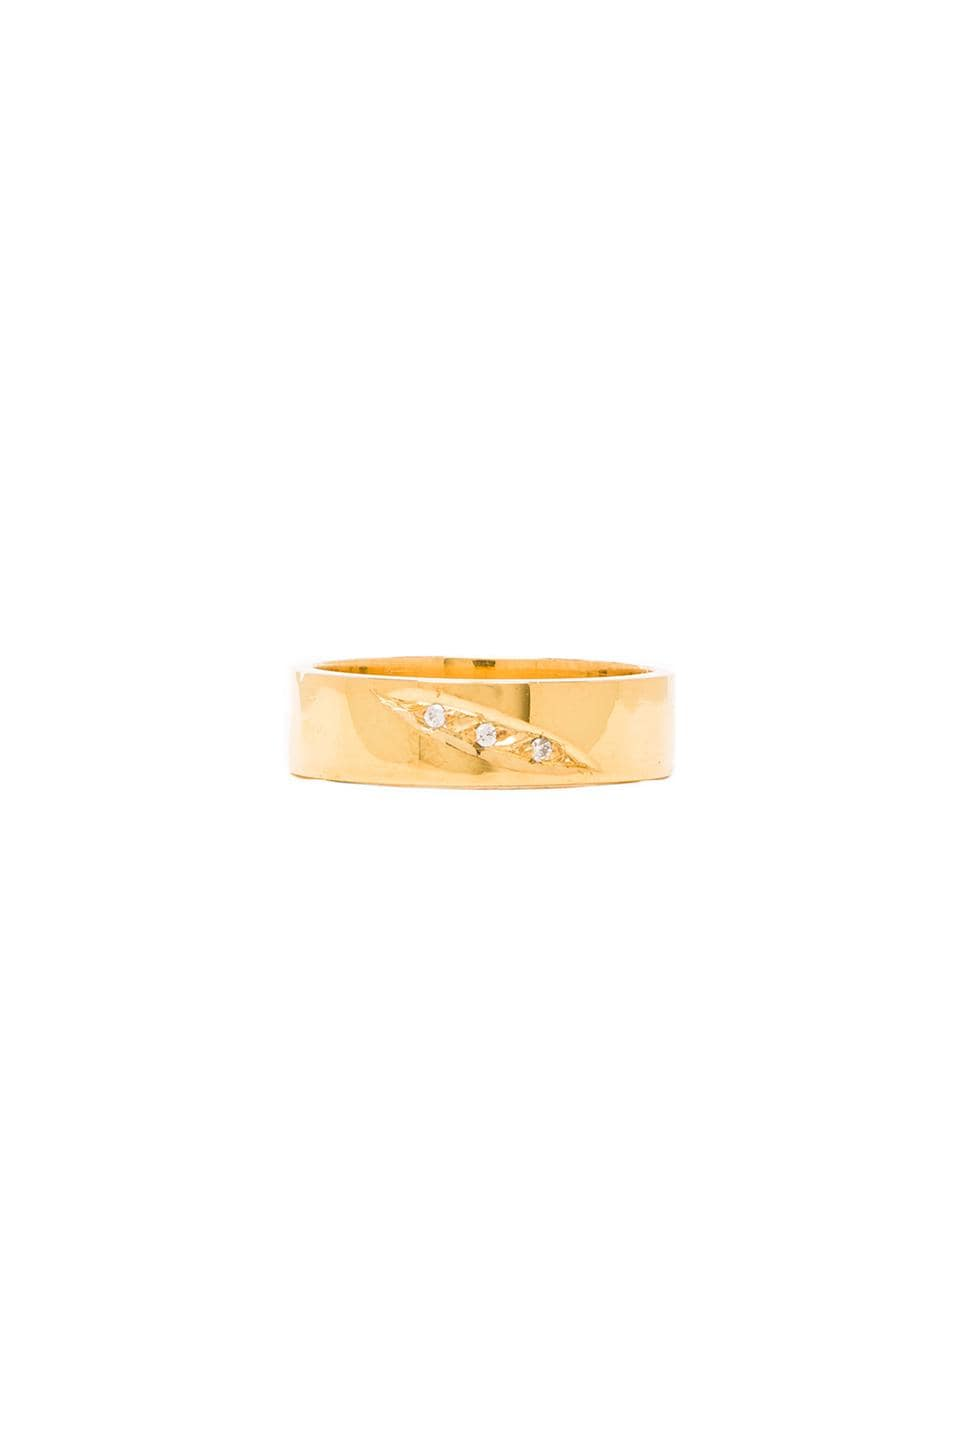 JNB Midi Ring in Gold